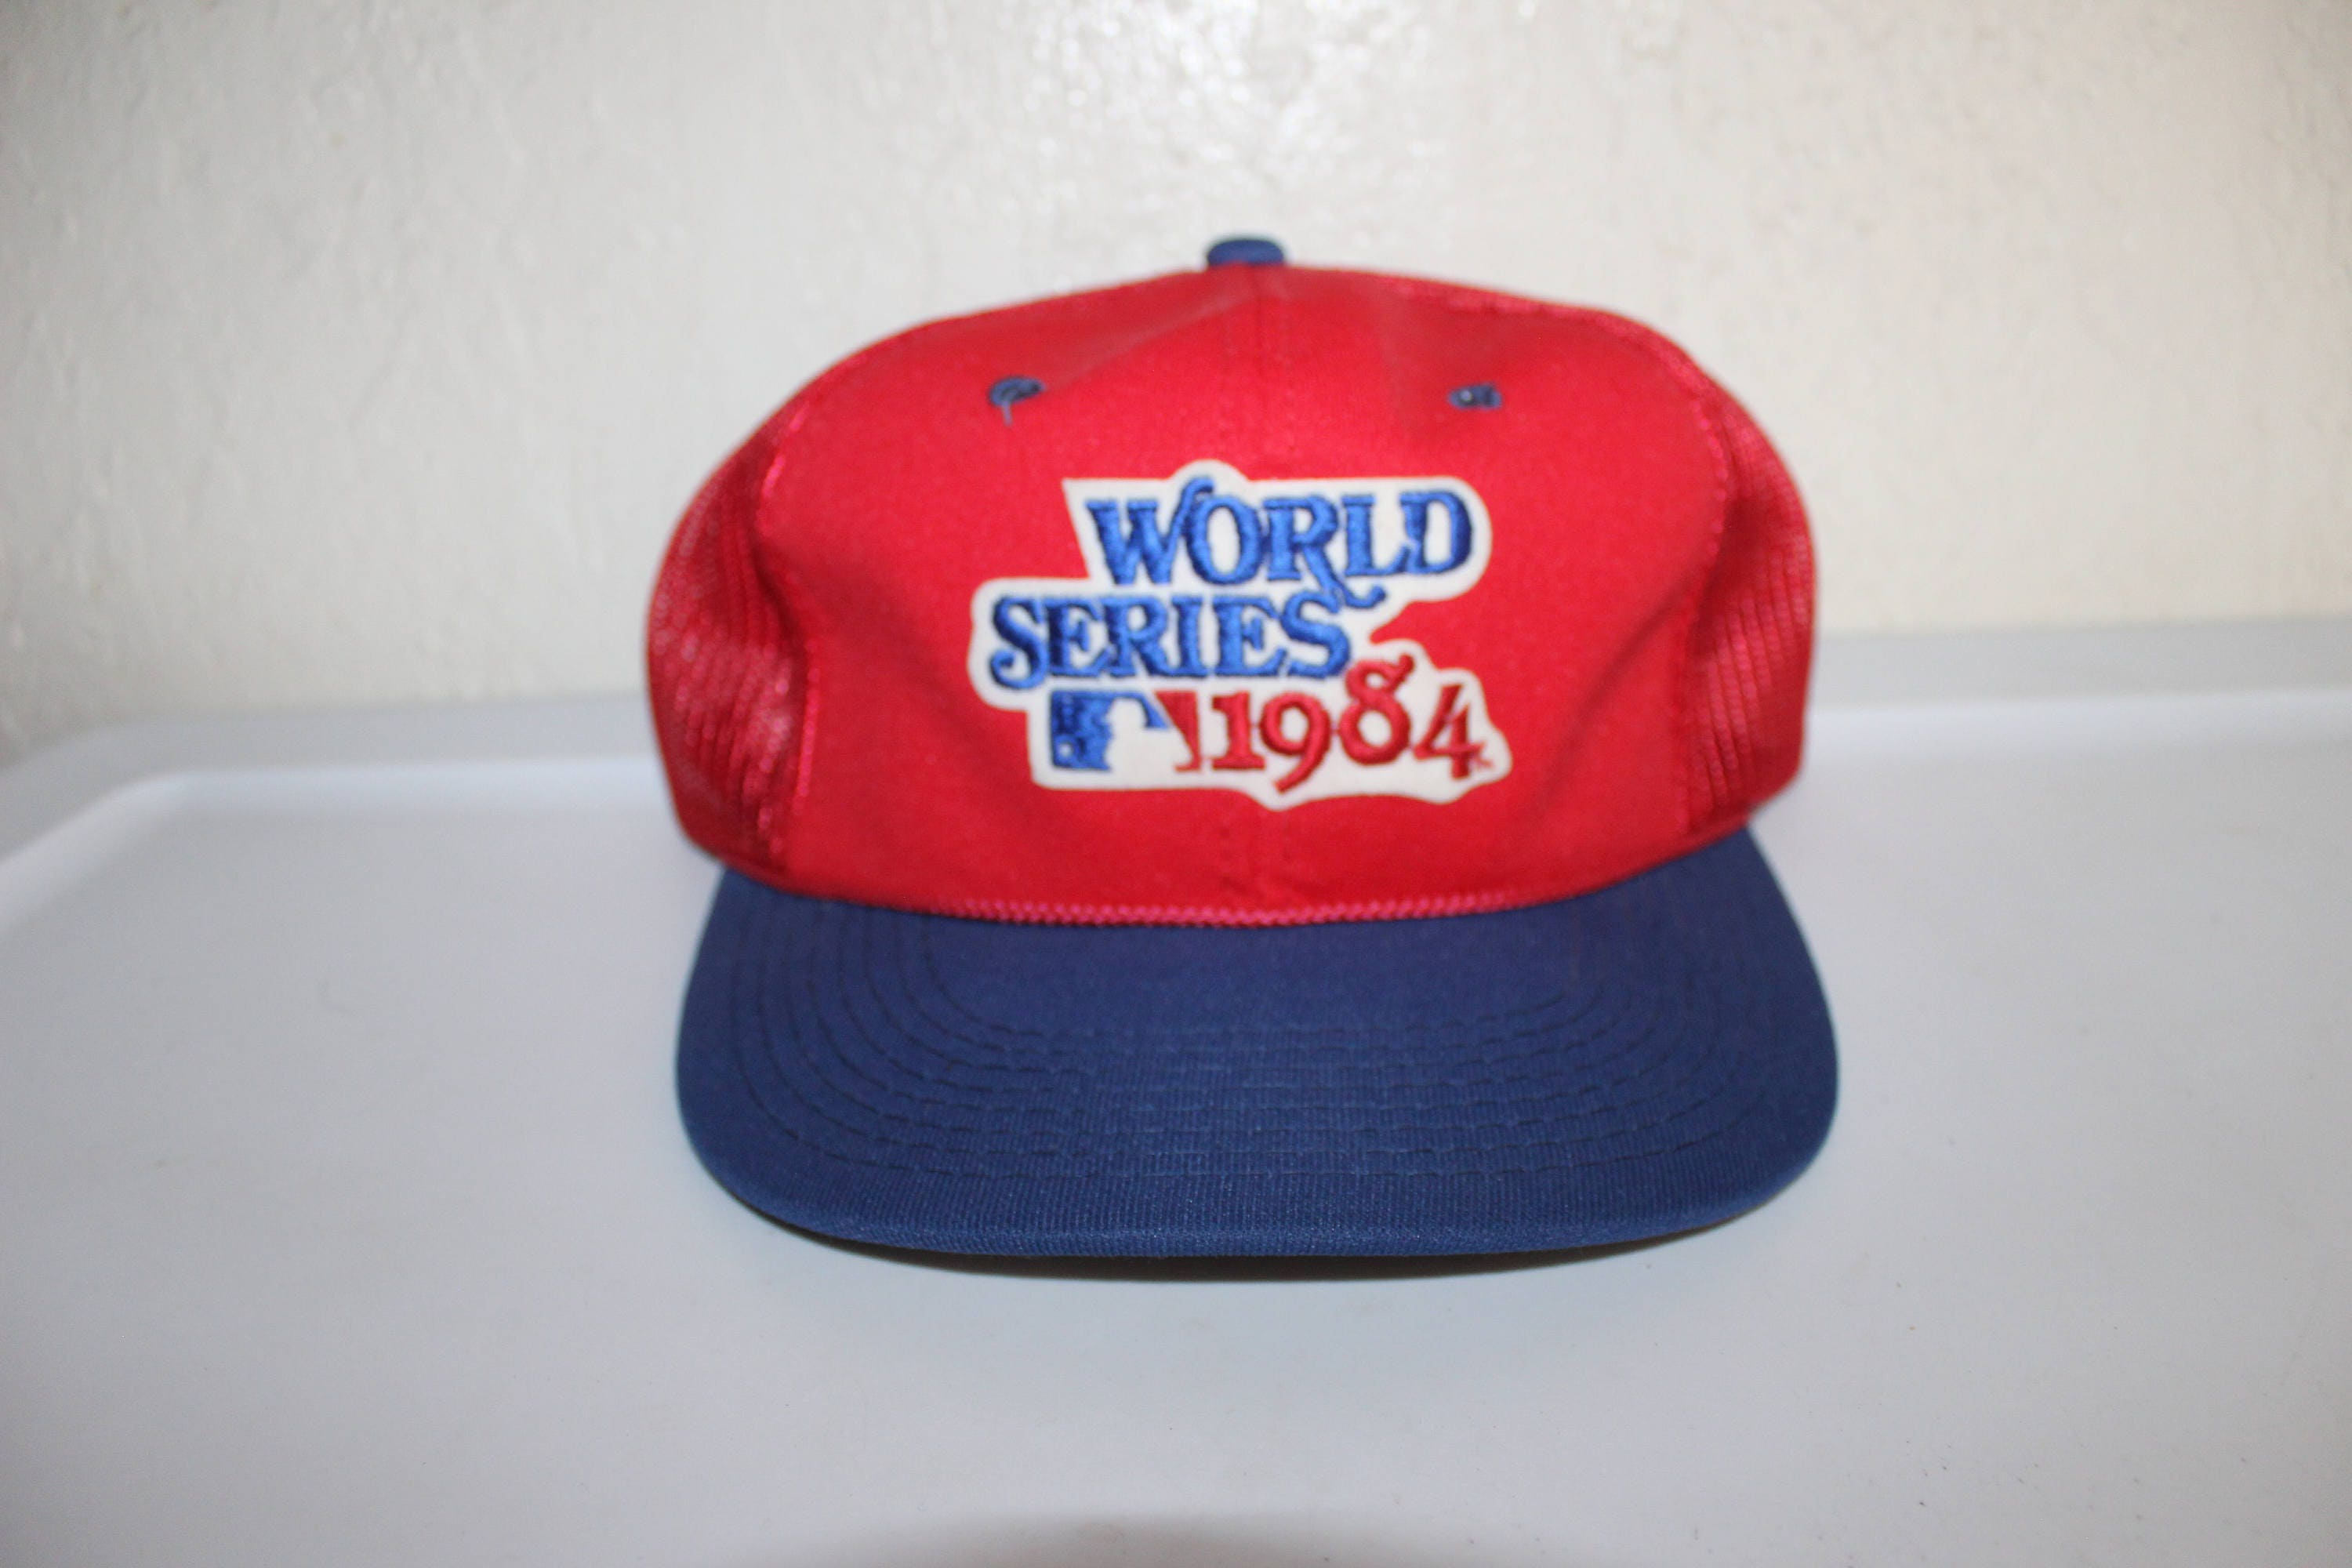 6b82a2745f3 Vintage 1984 World Series Meshback Snapback by Sports Specialties